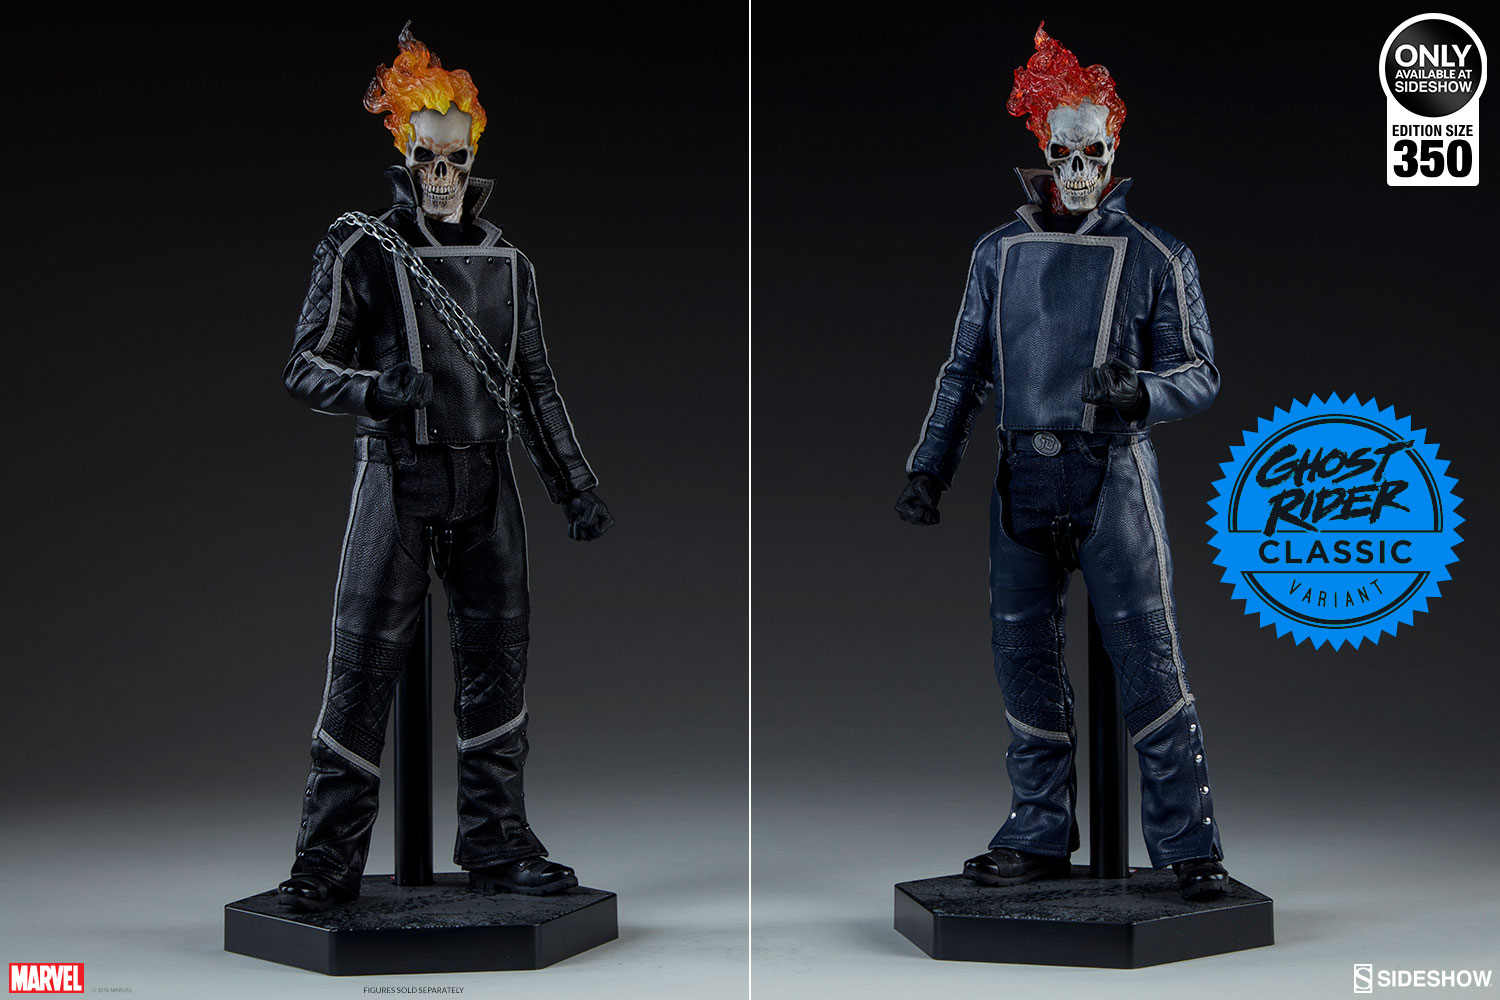 marvel-ghost-rider-classic-variant-sixth-scale-figure-sideshow-1003852-19